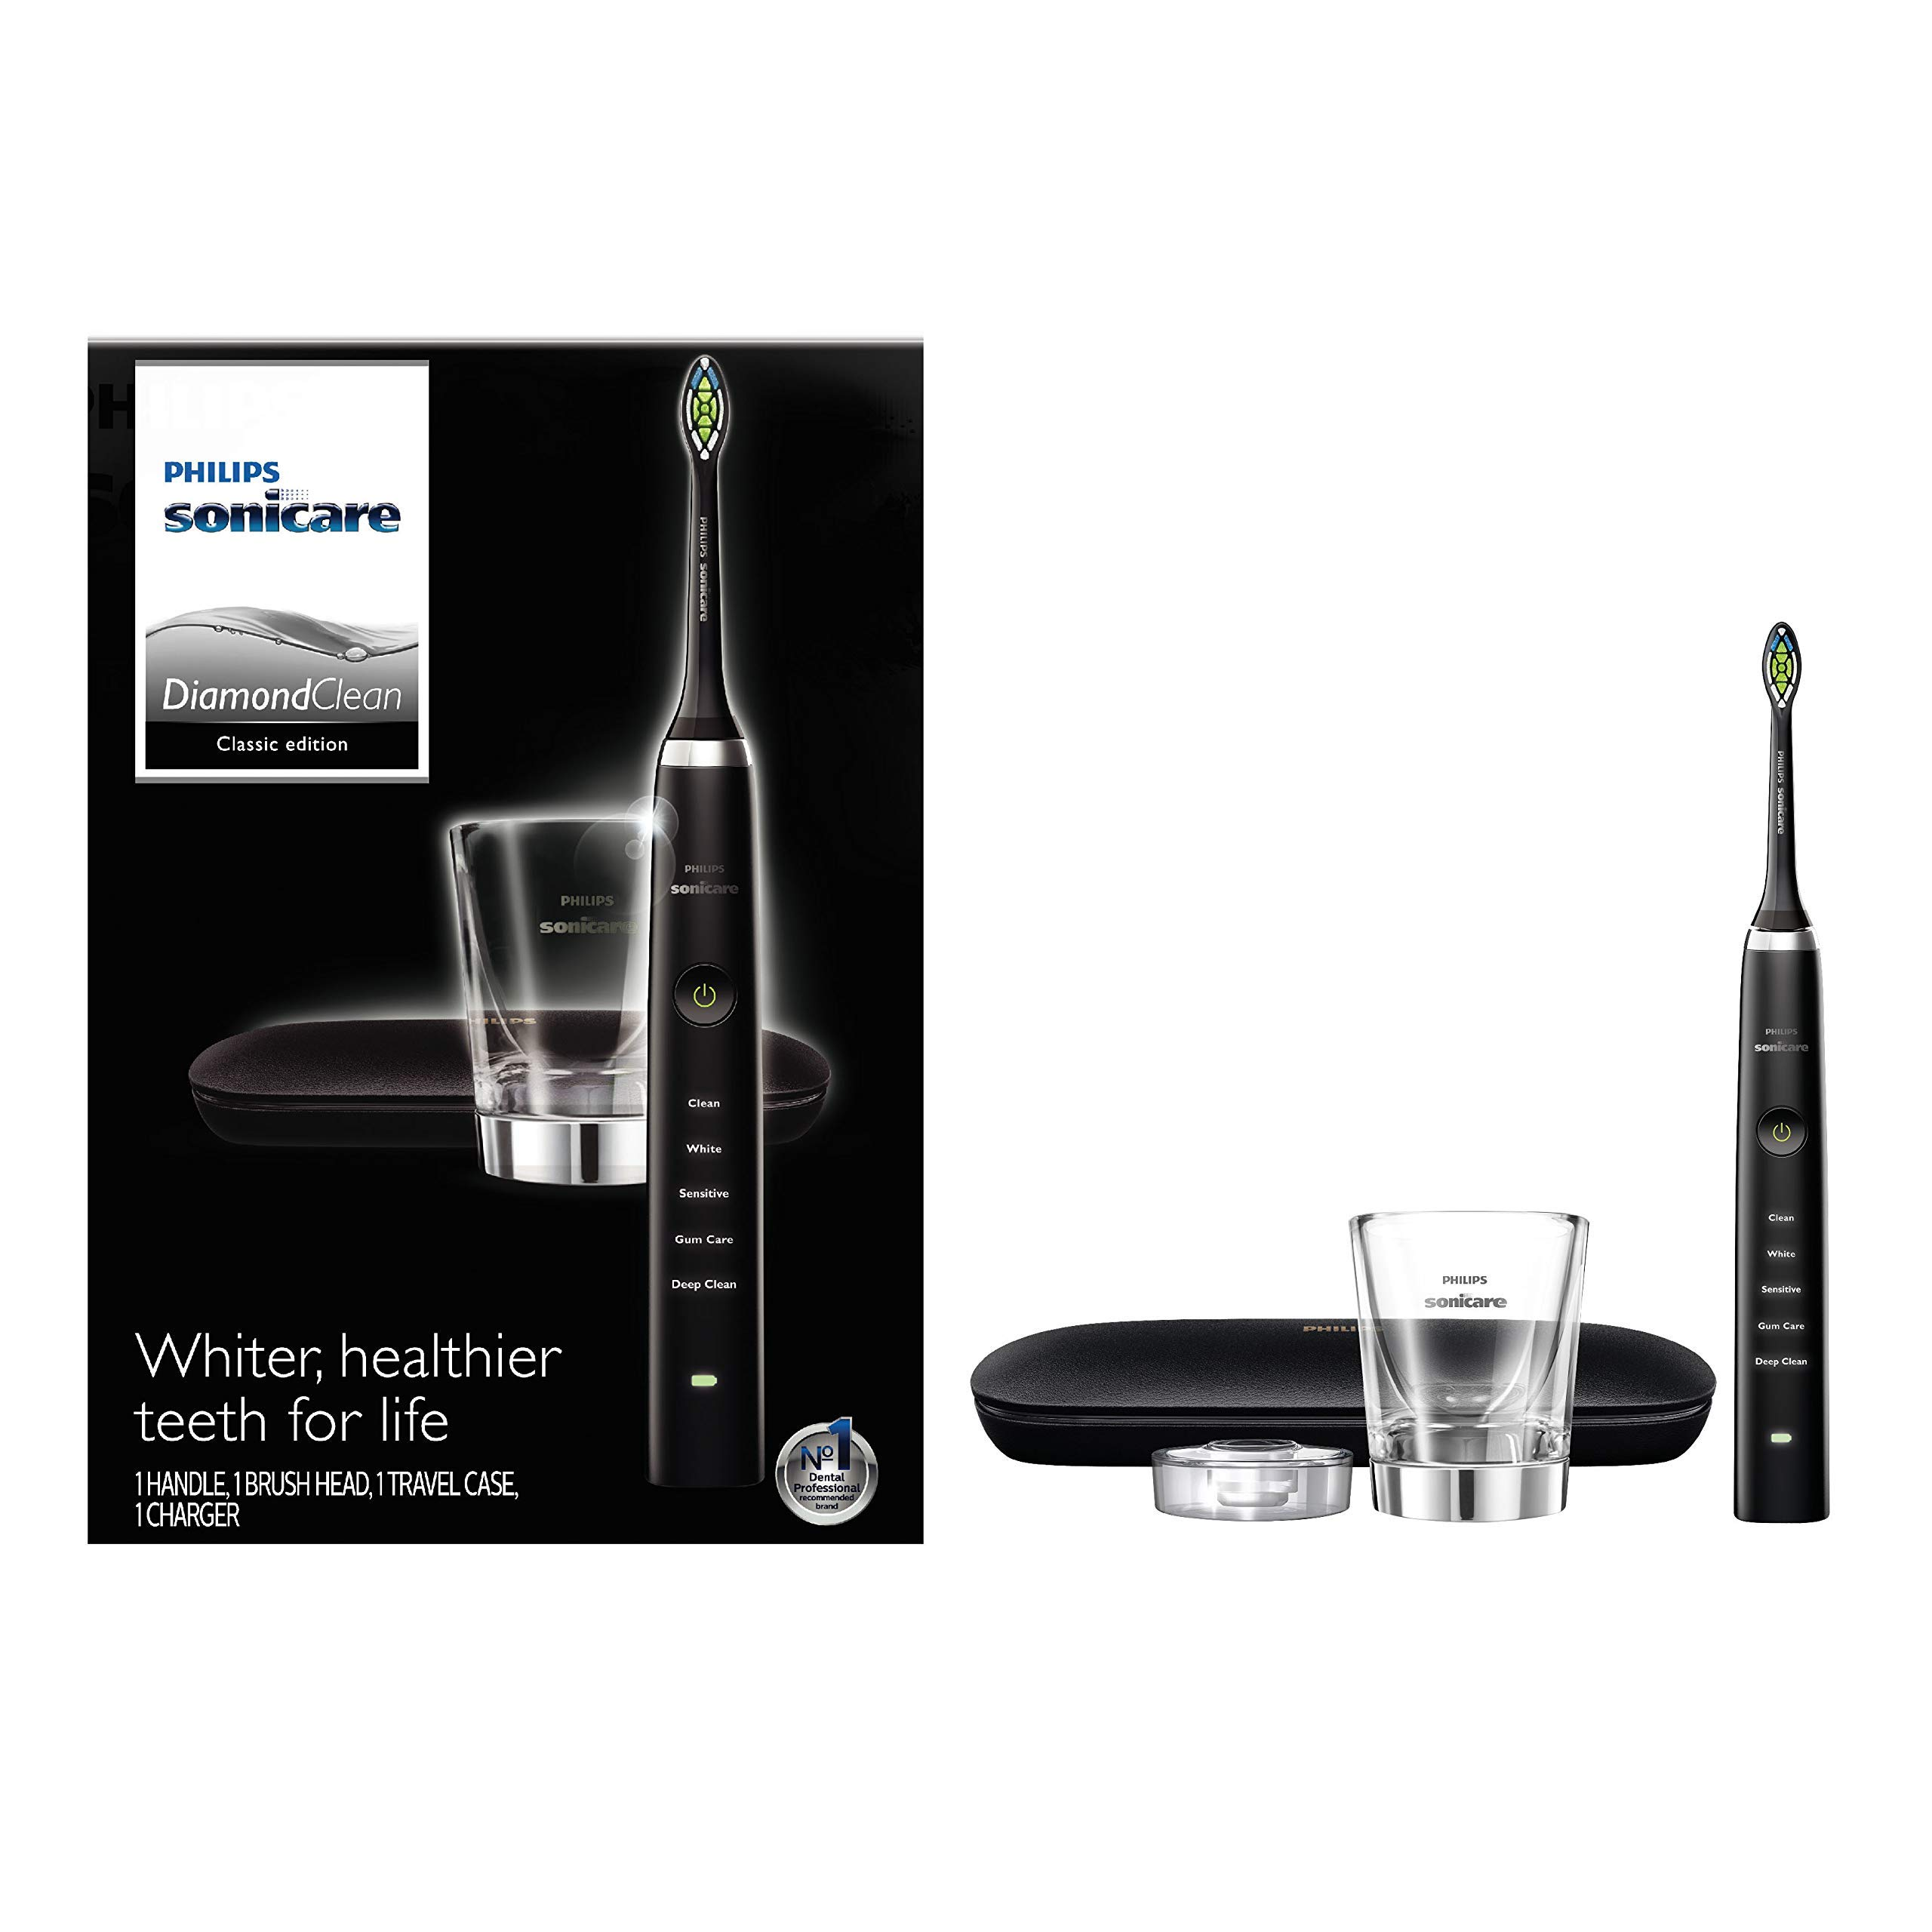 Philips Sonicare Diamond Clean Classic Rechargeable  5 brushing modes, Electric Toothbrush with premium travel case, Black, HX9351/57, 1 Count by Philips Sonicare (Image #3)